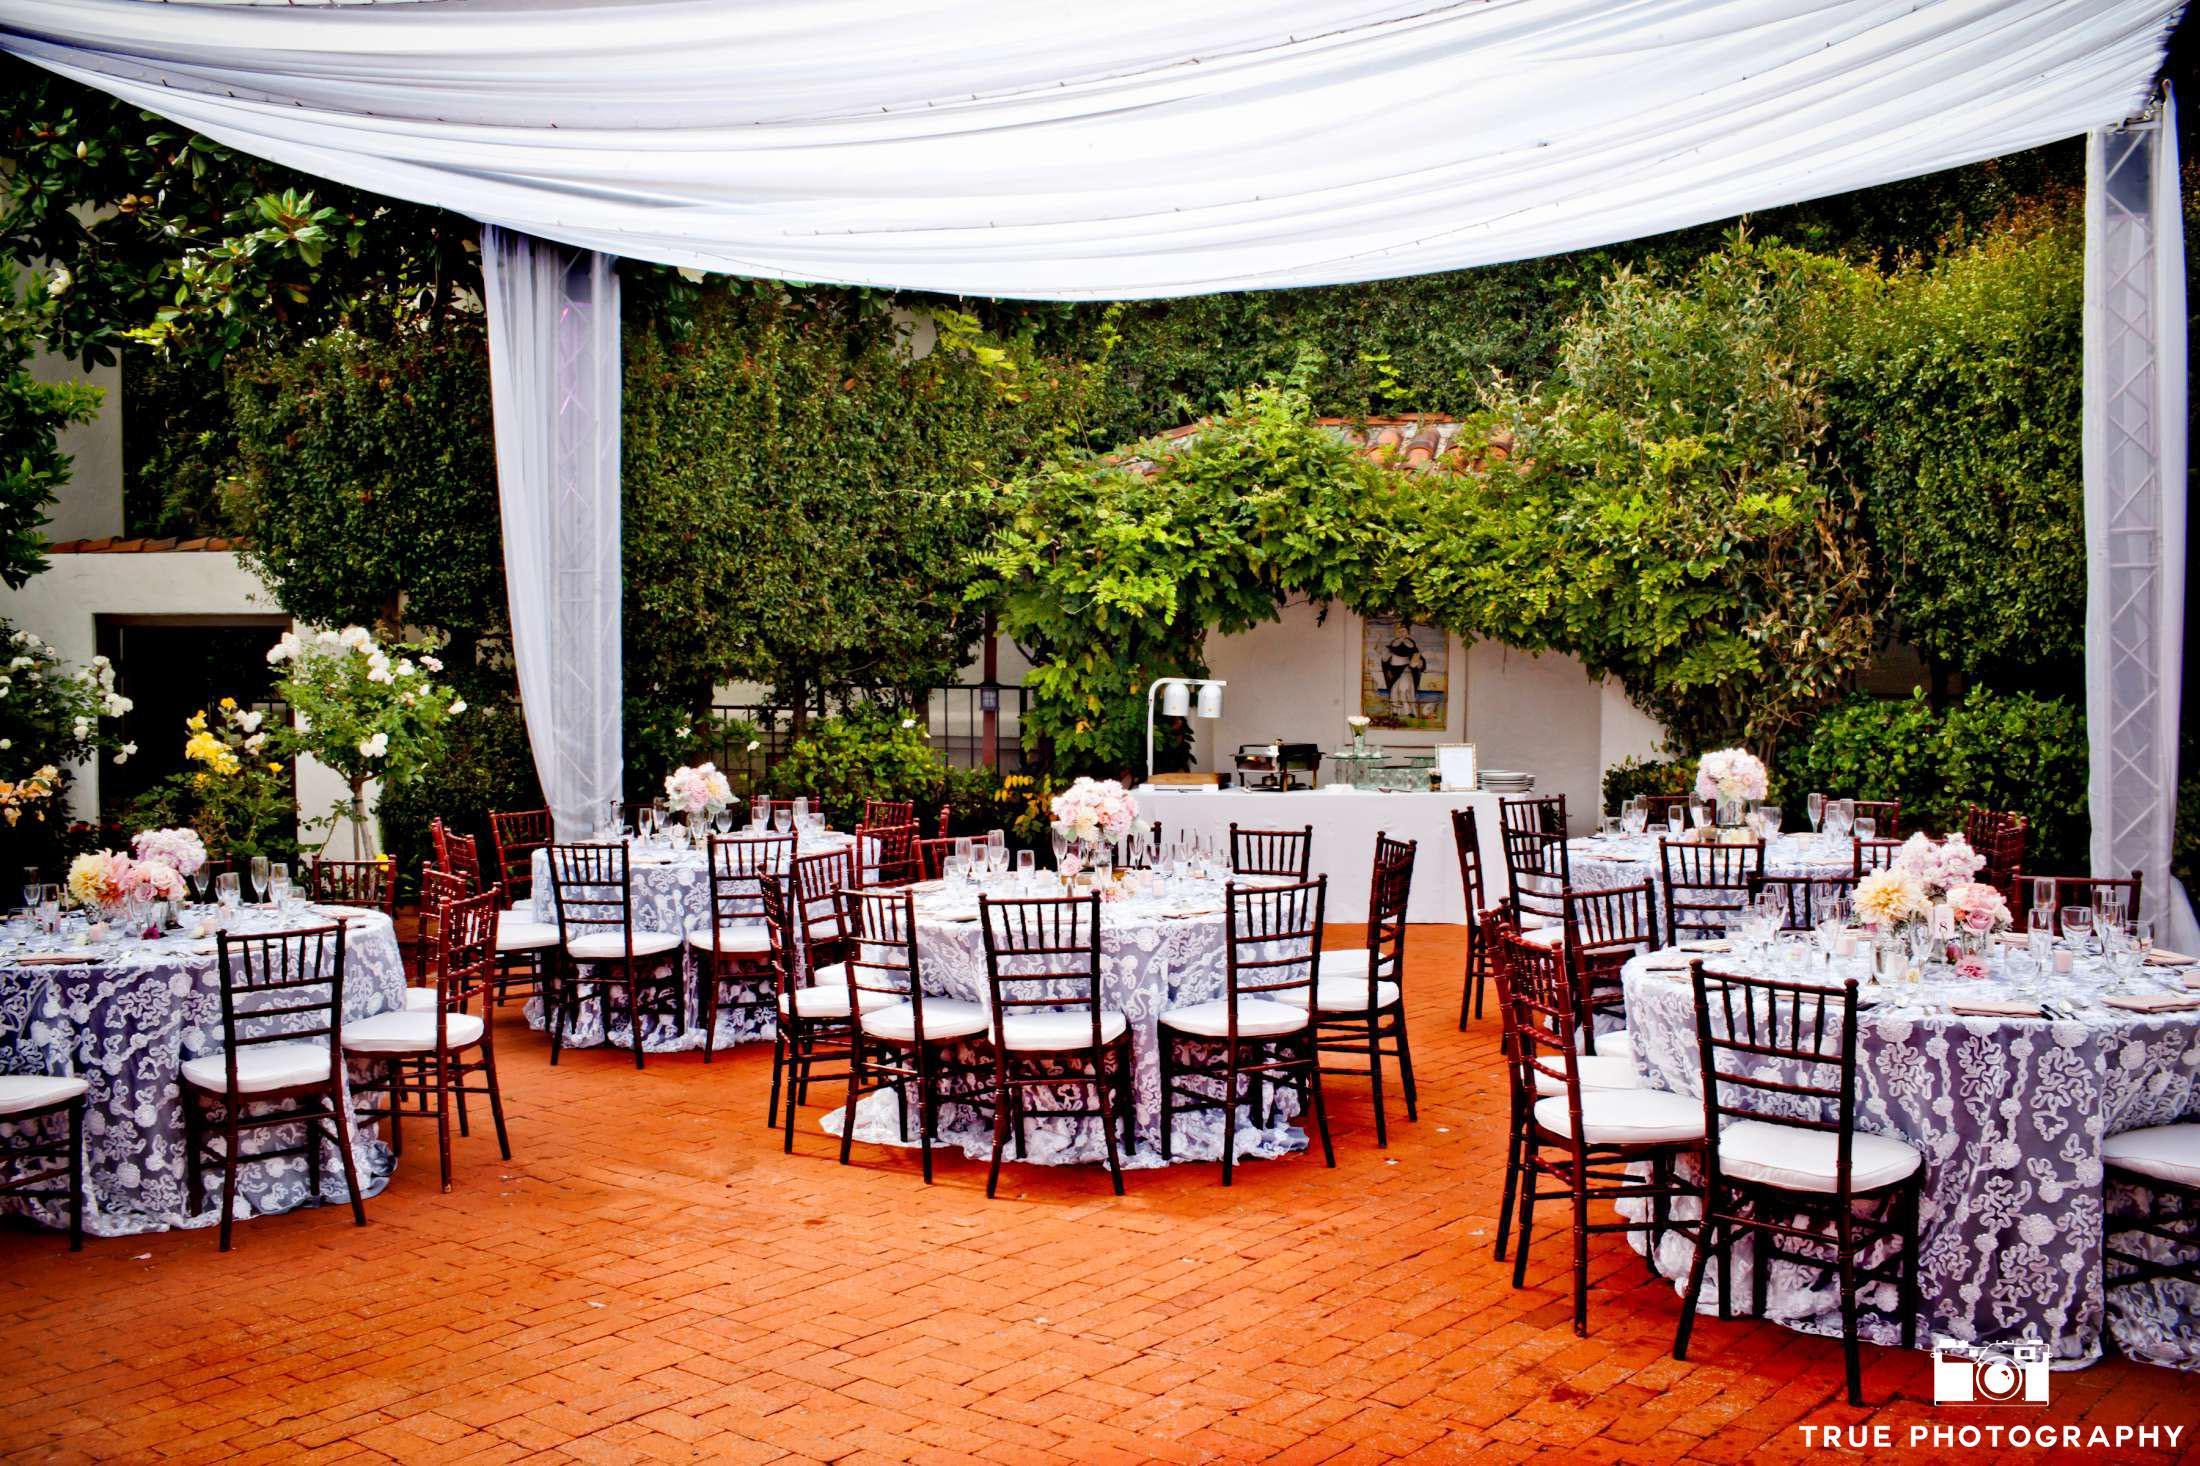 7 Flower And Nature Filled San Diego Wedding Venues That Are Perfect For A Romantic Spring Wedding